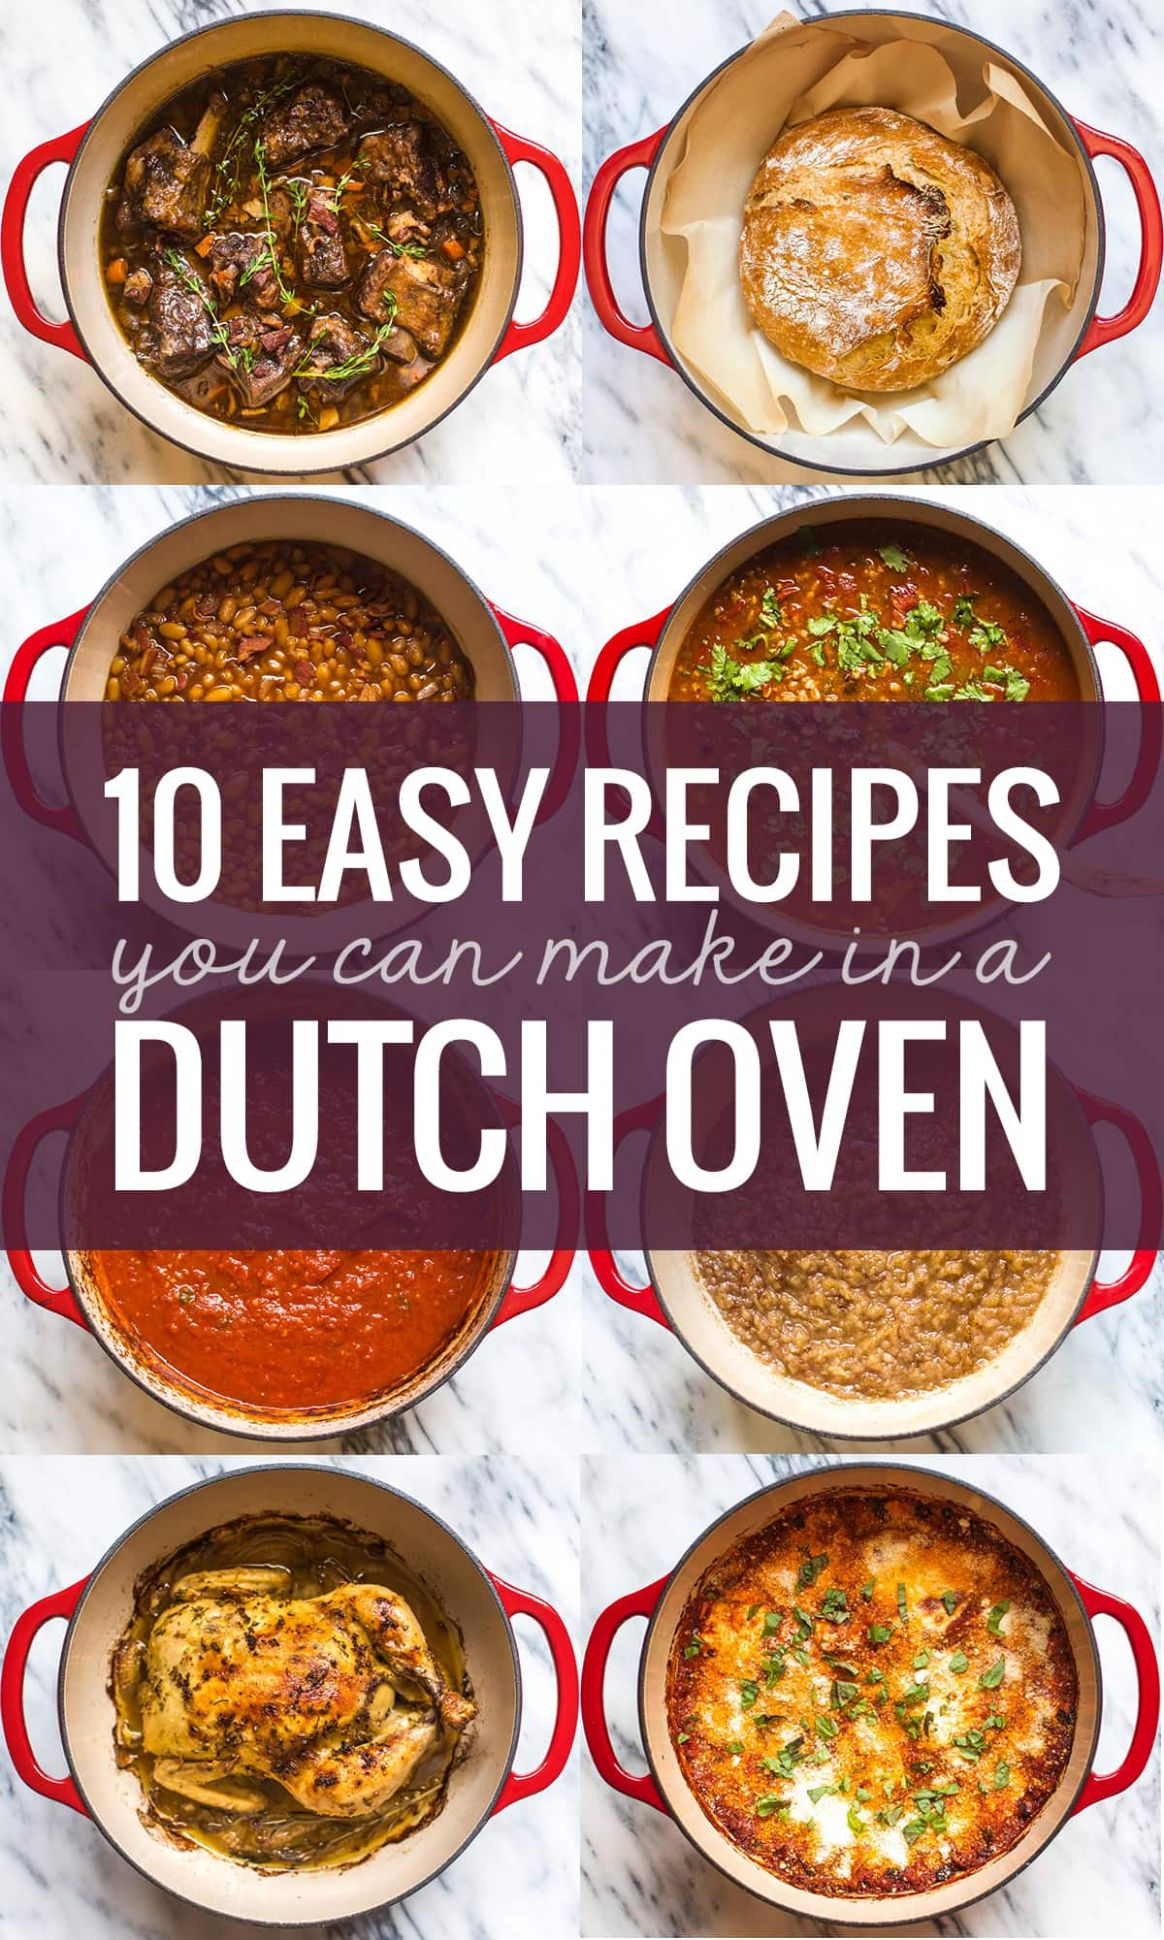 9 Easy Recipes You Can Make in a Dutch Oven - Pinch of Yum